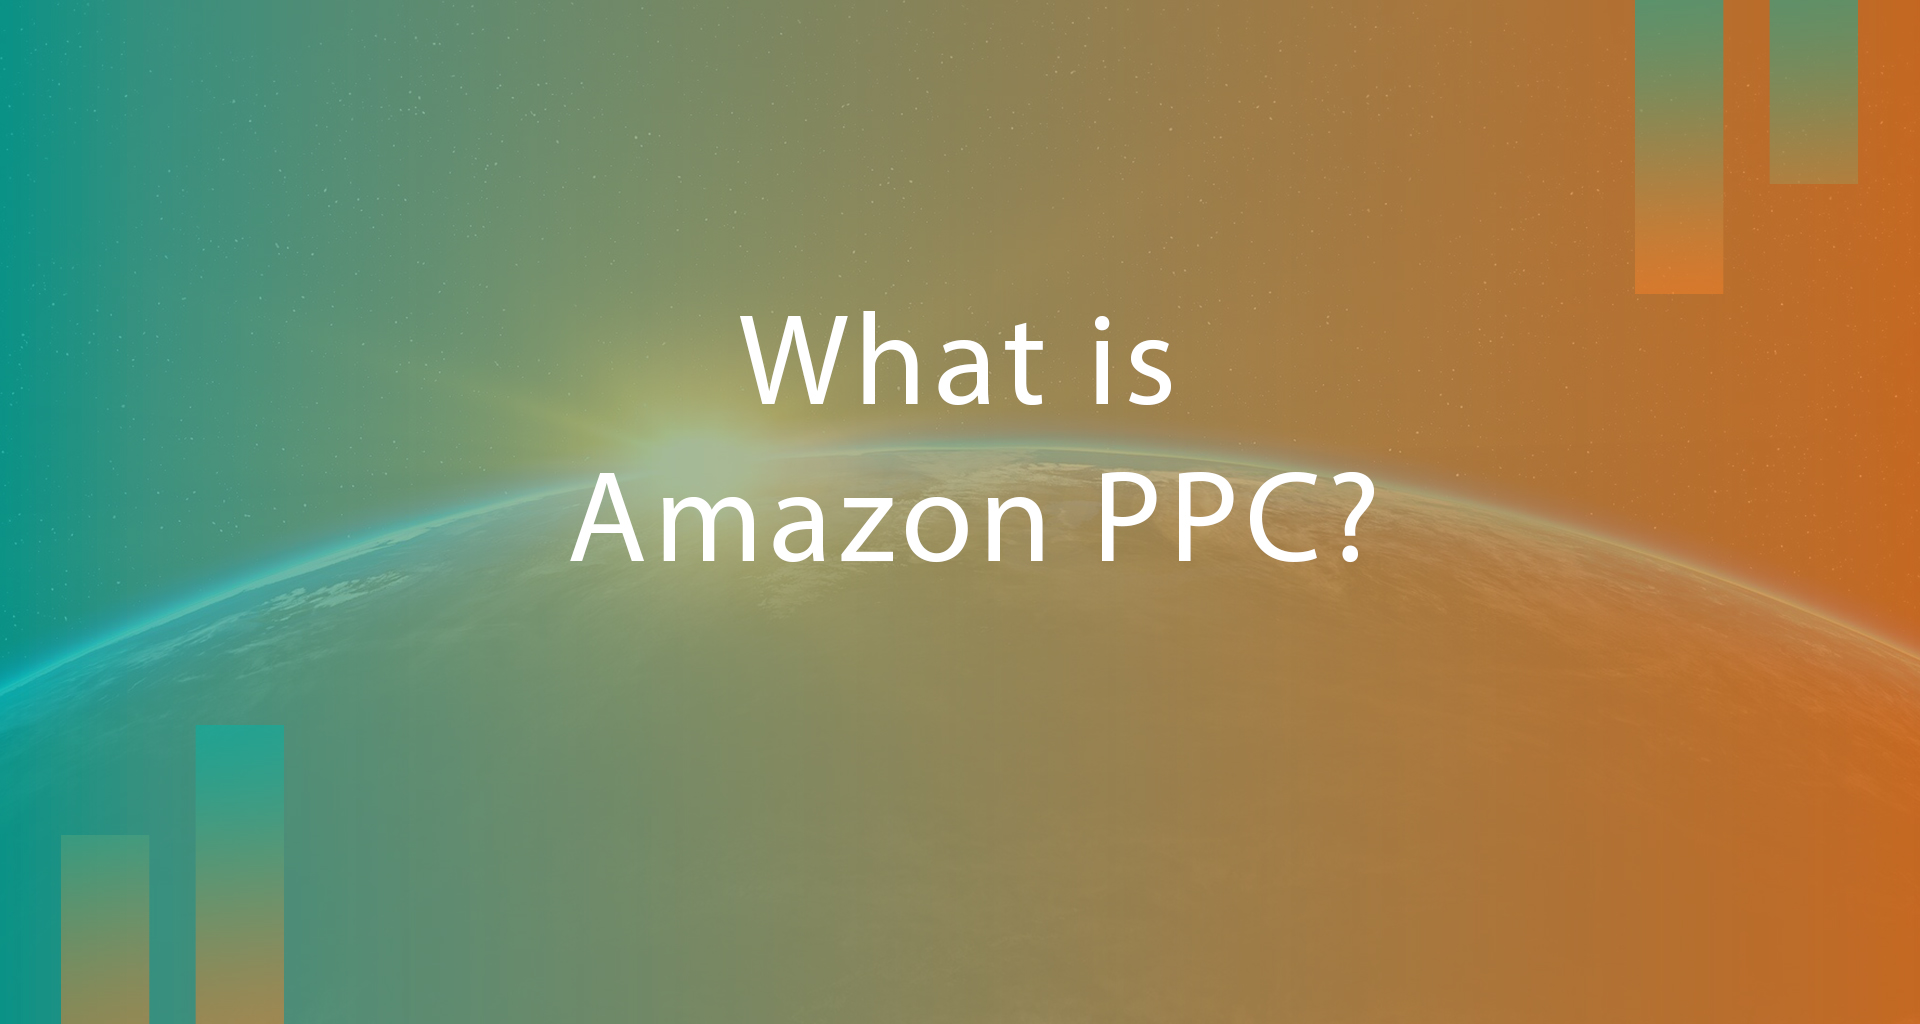 What is Amazon PPC?